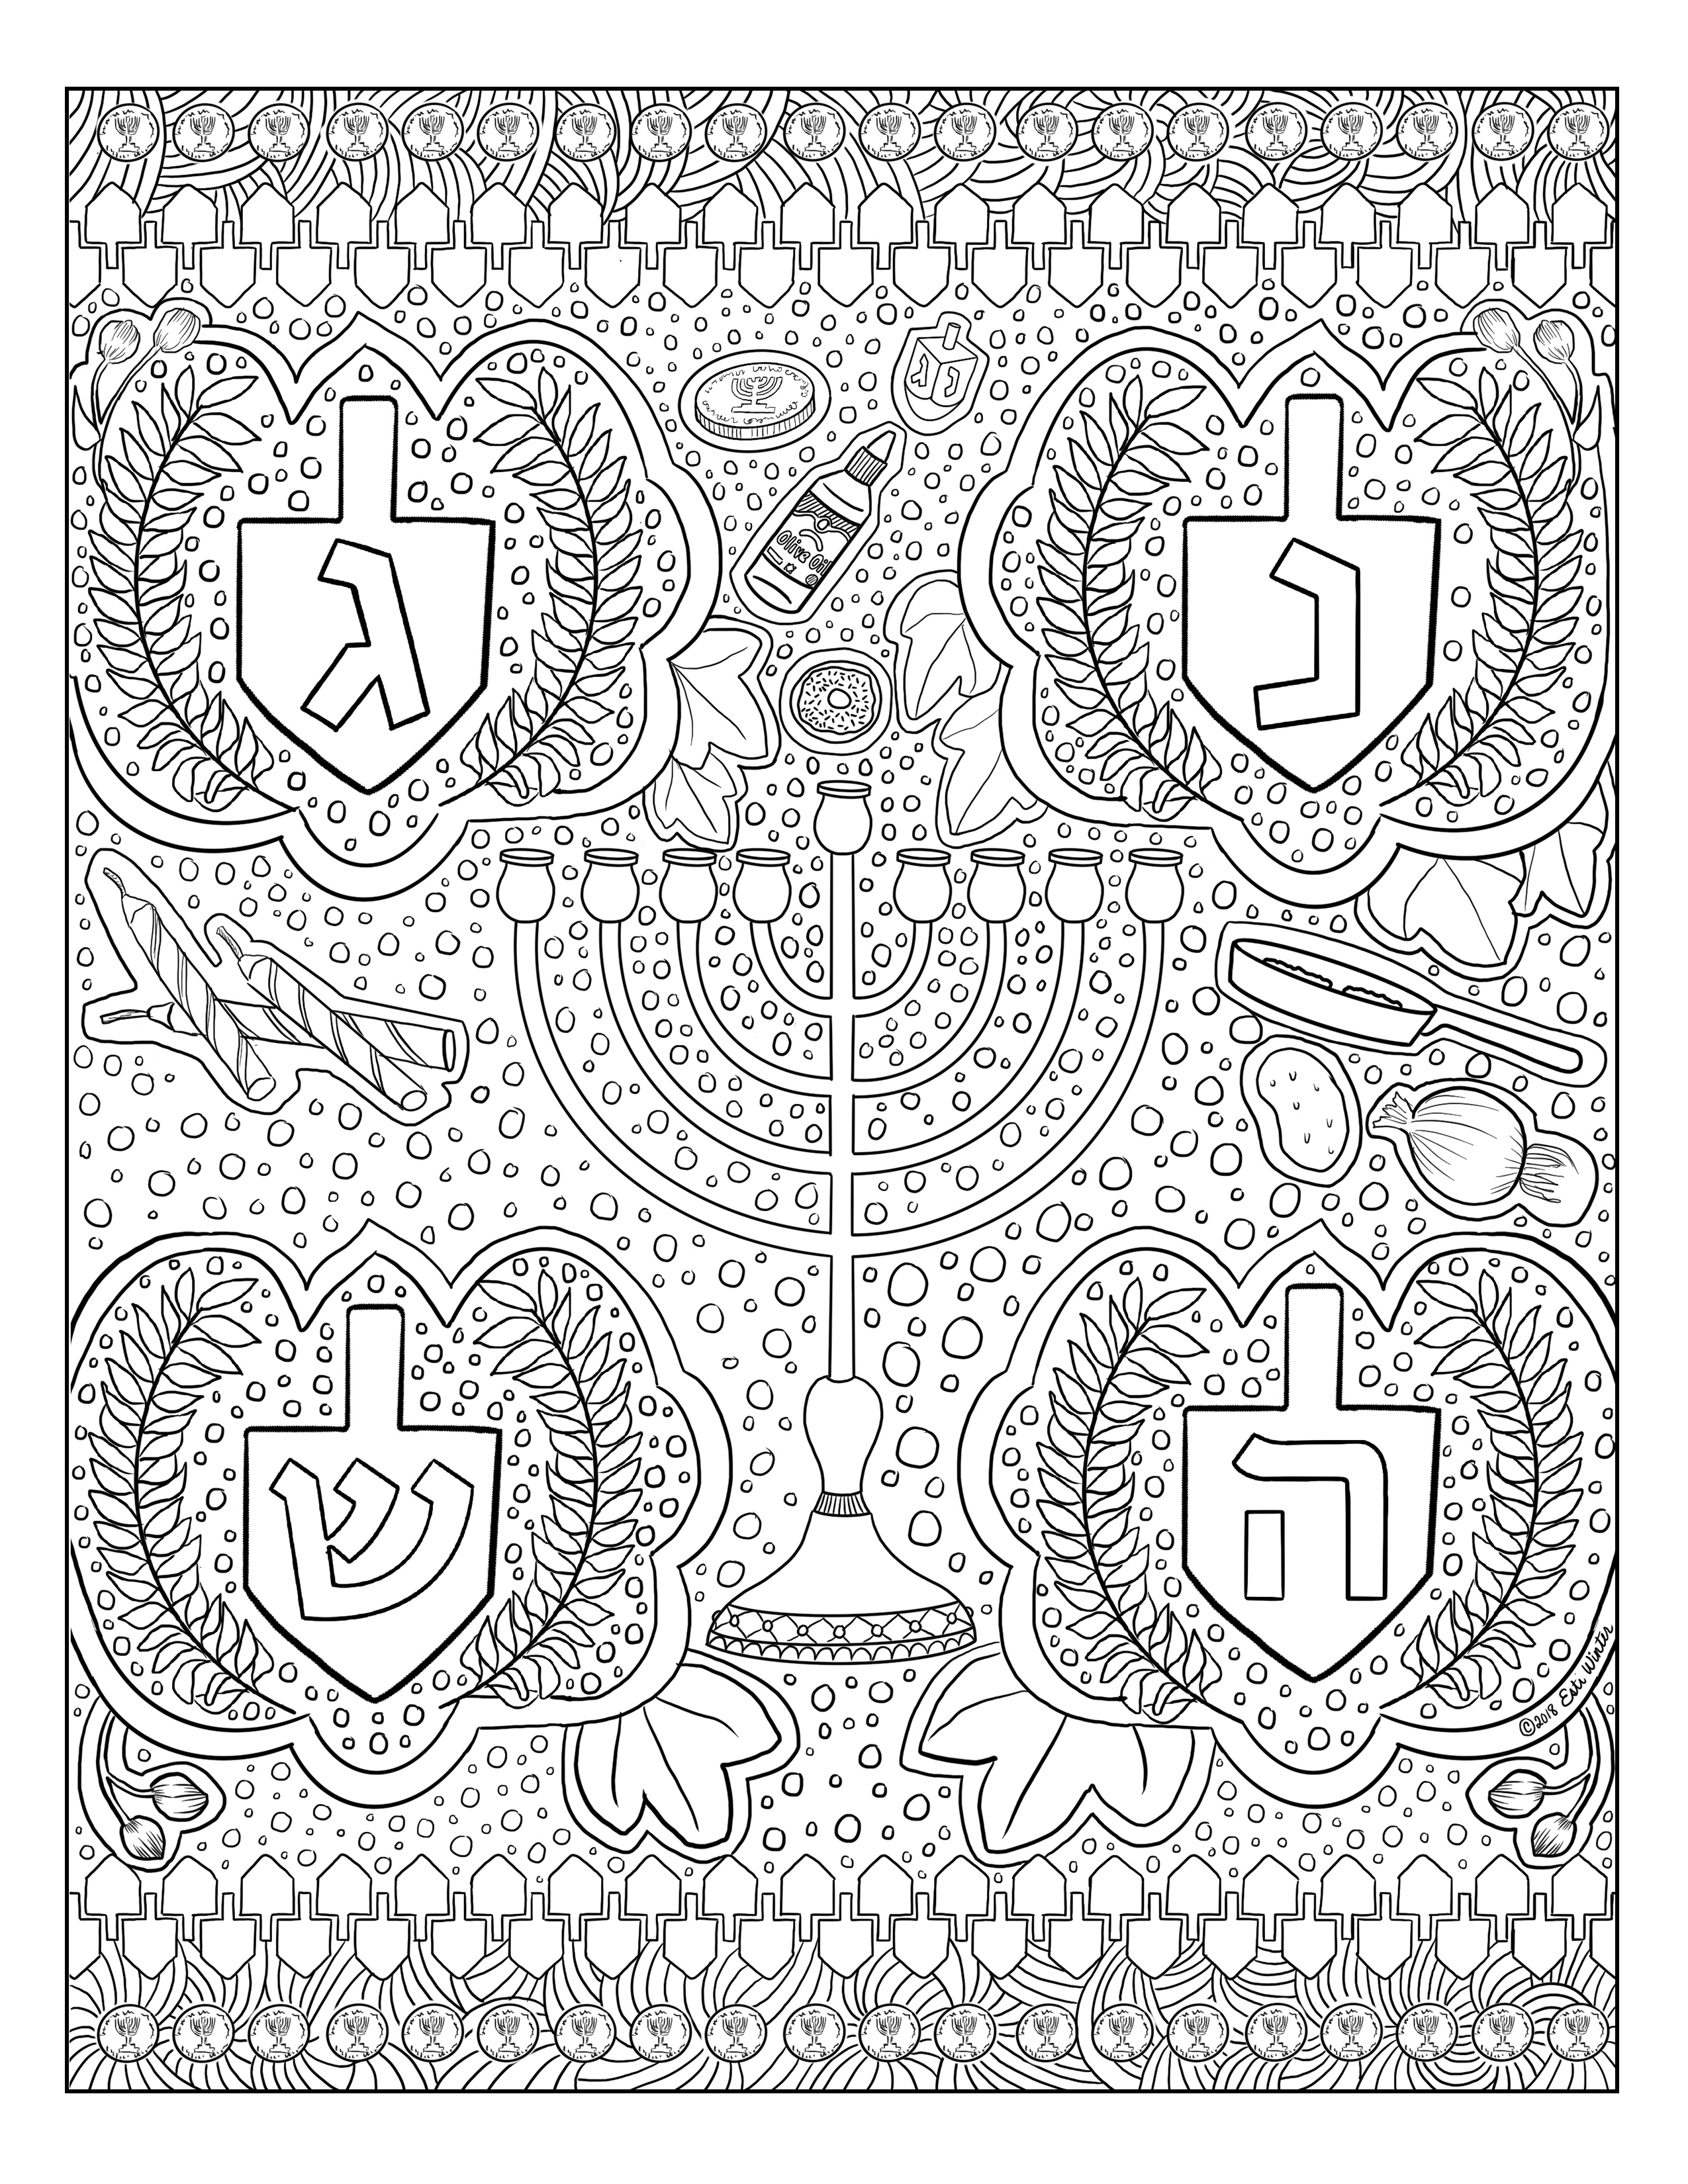 Chanukah 2018 coloring page BCP